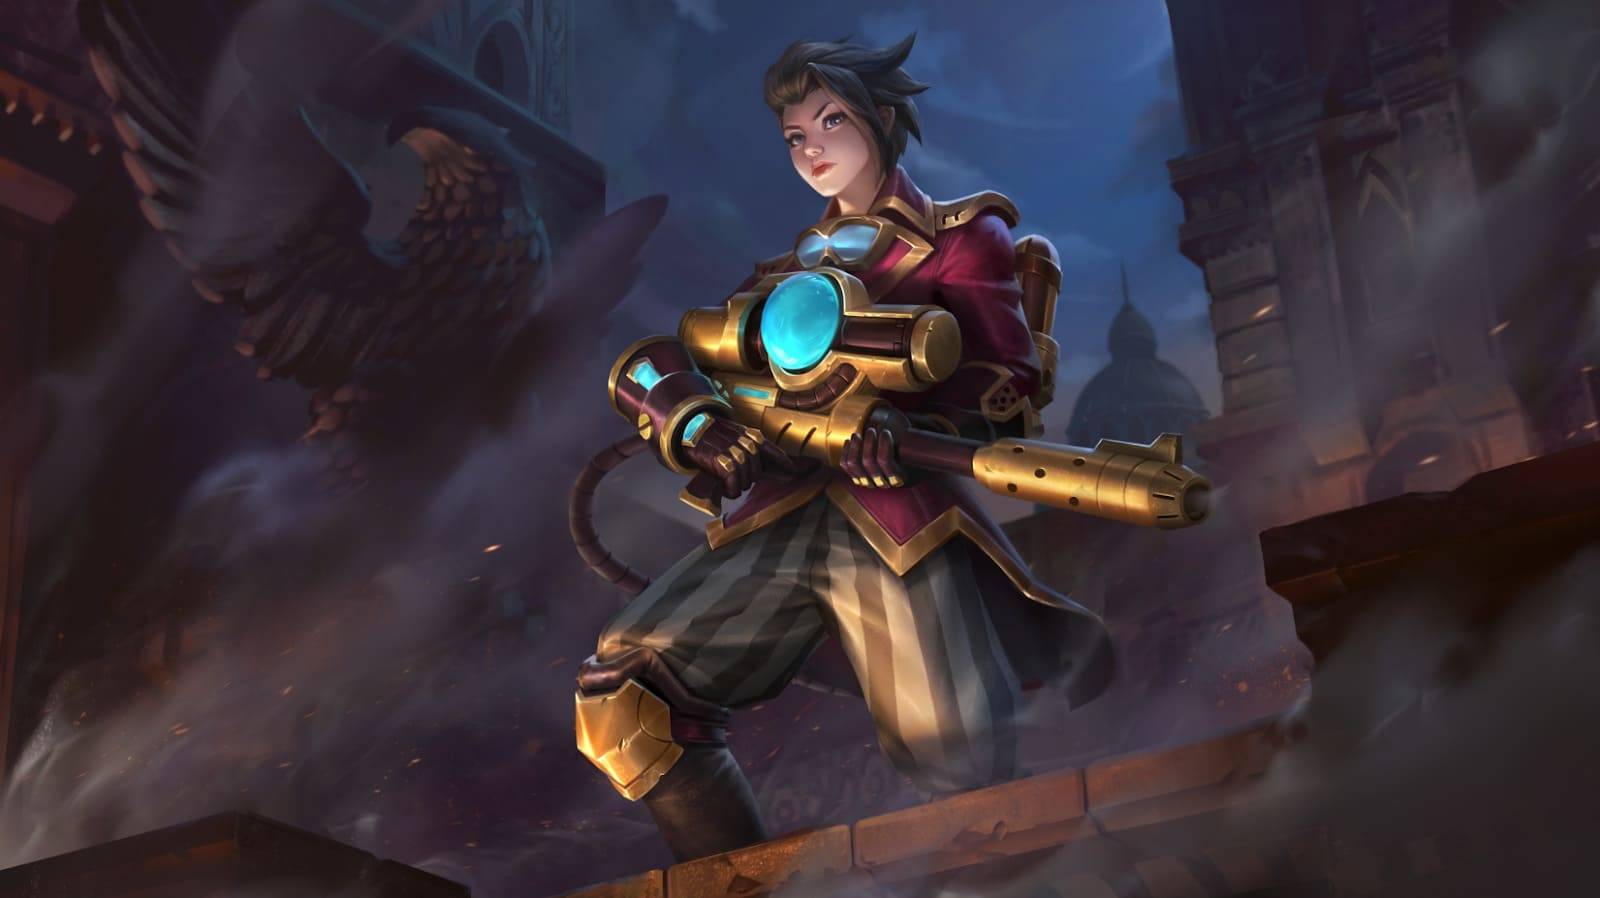 Wallpaper Kimmy Steam Researcher Skin Mobile Legends HD for PC